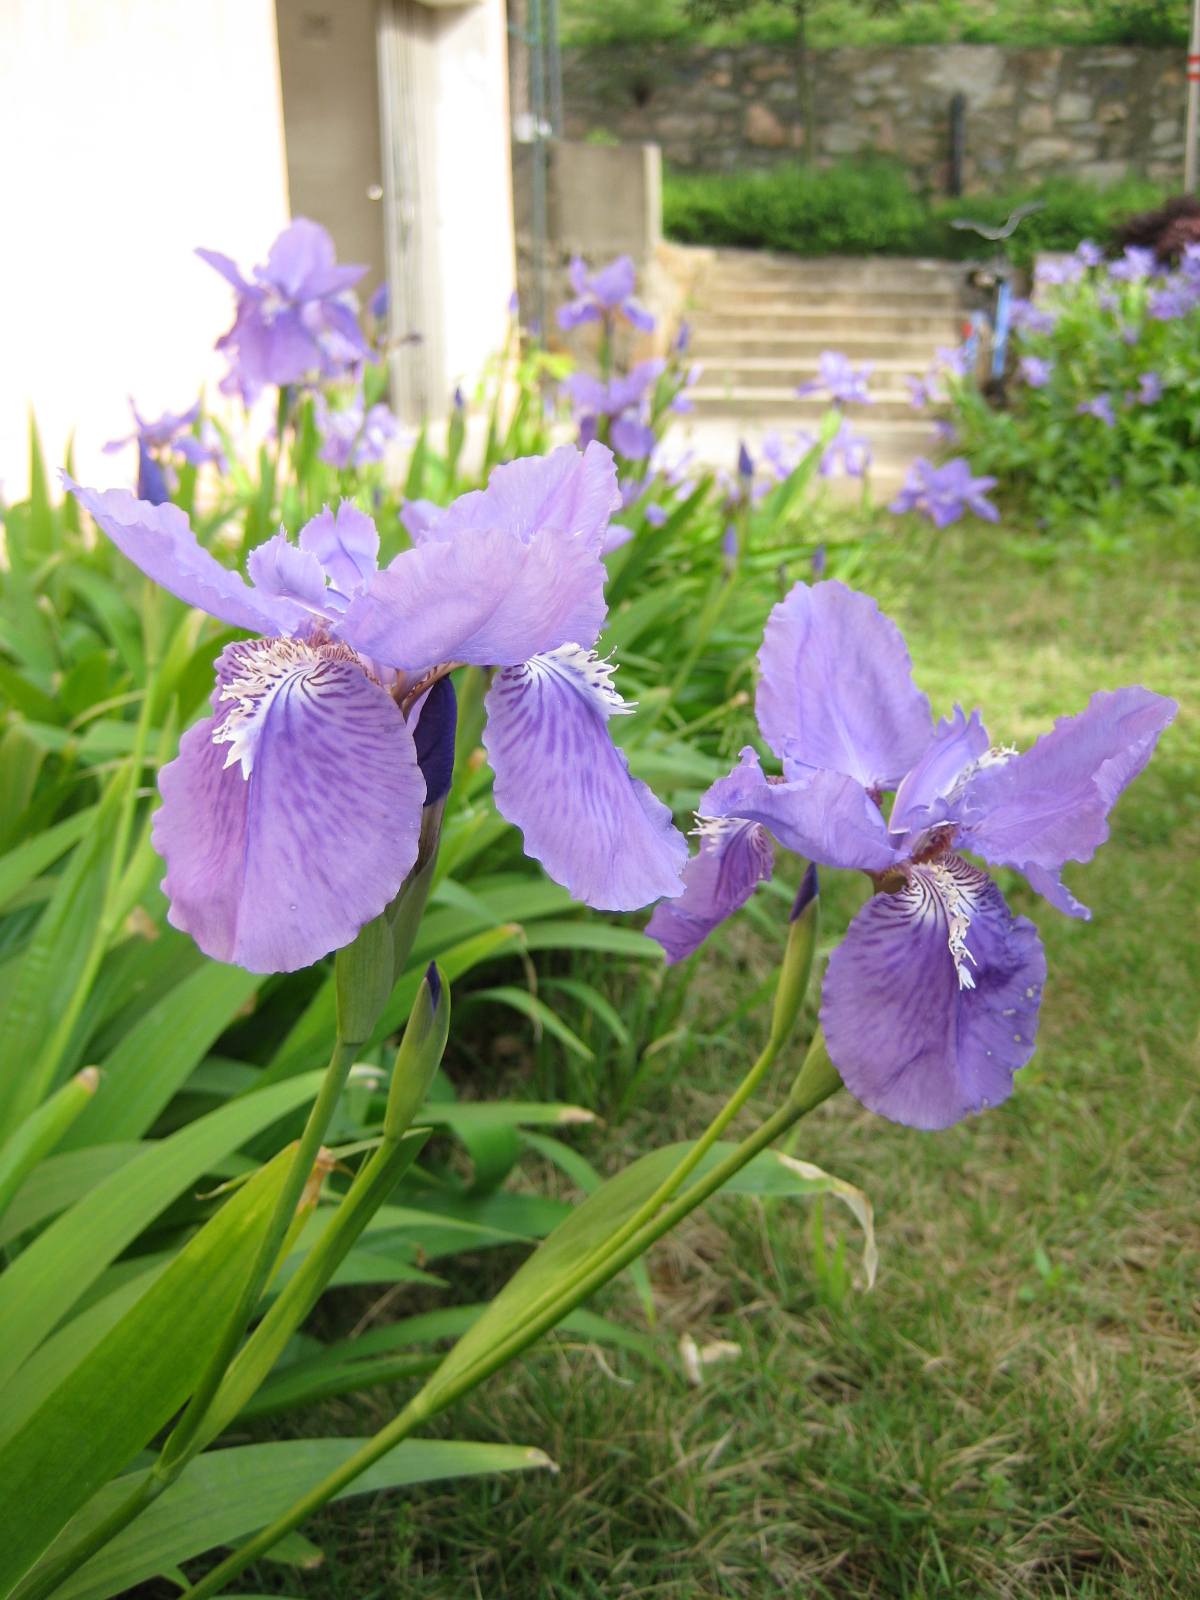 Iris tectorum - Wikipedia: https://en.wikipedia.org/wiki/Iris_tectorum